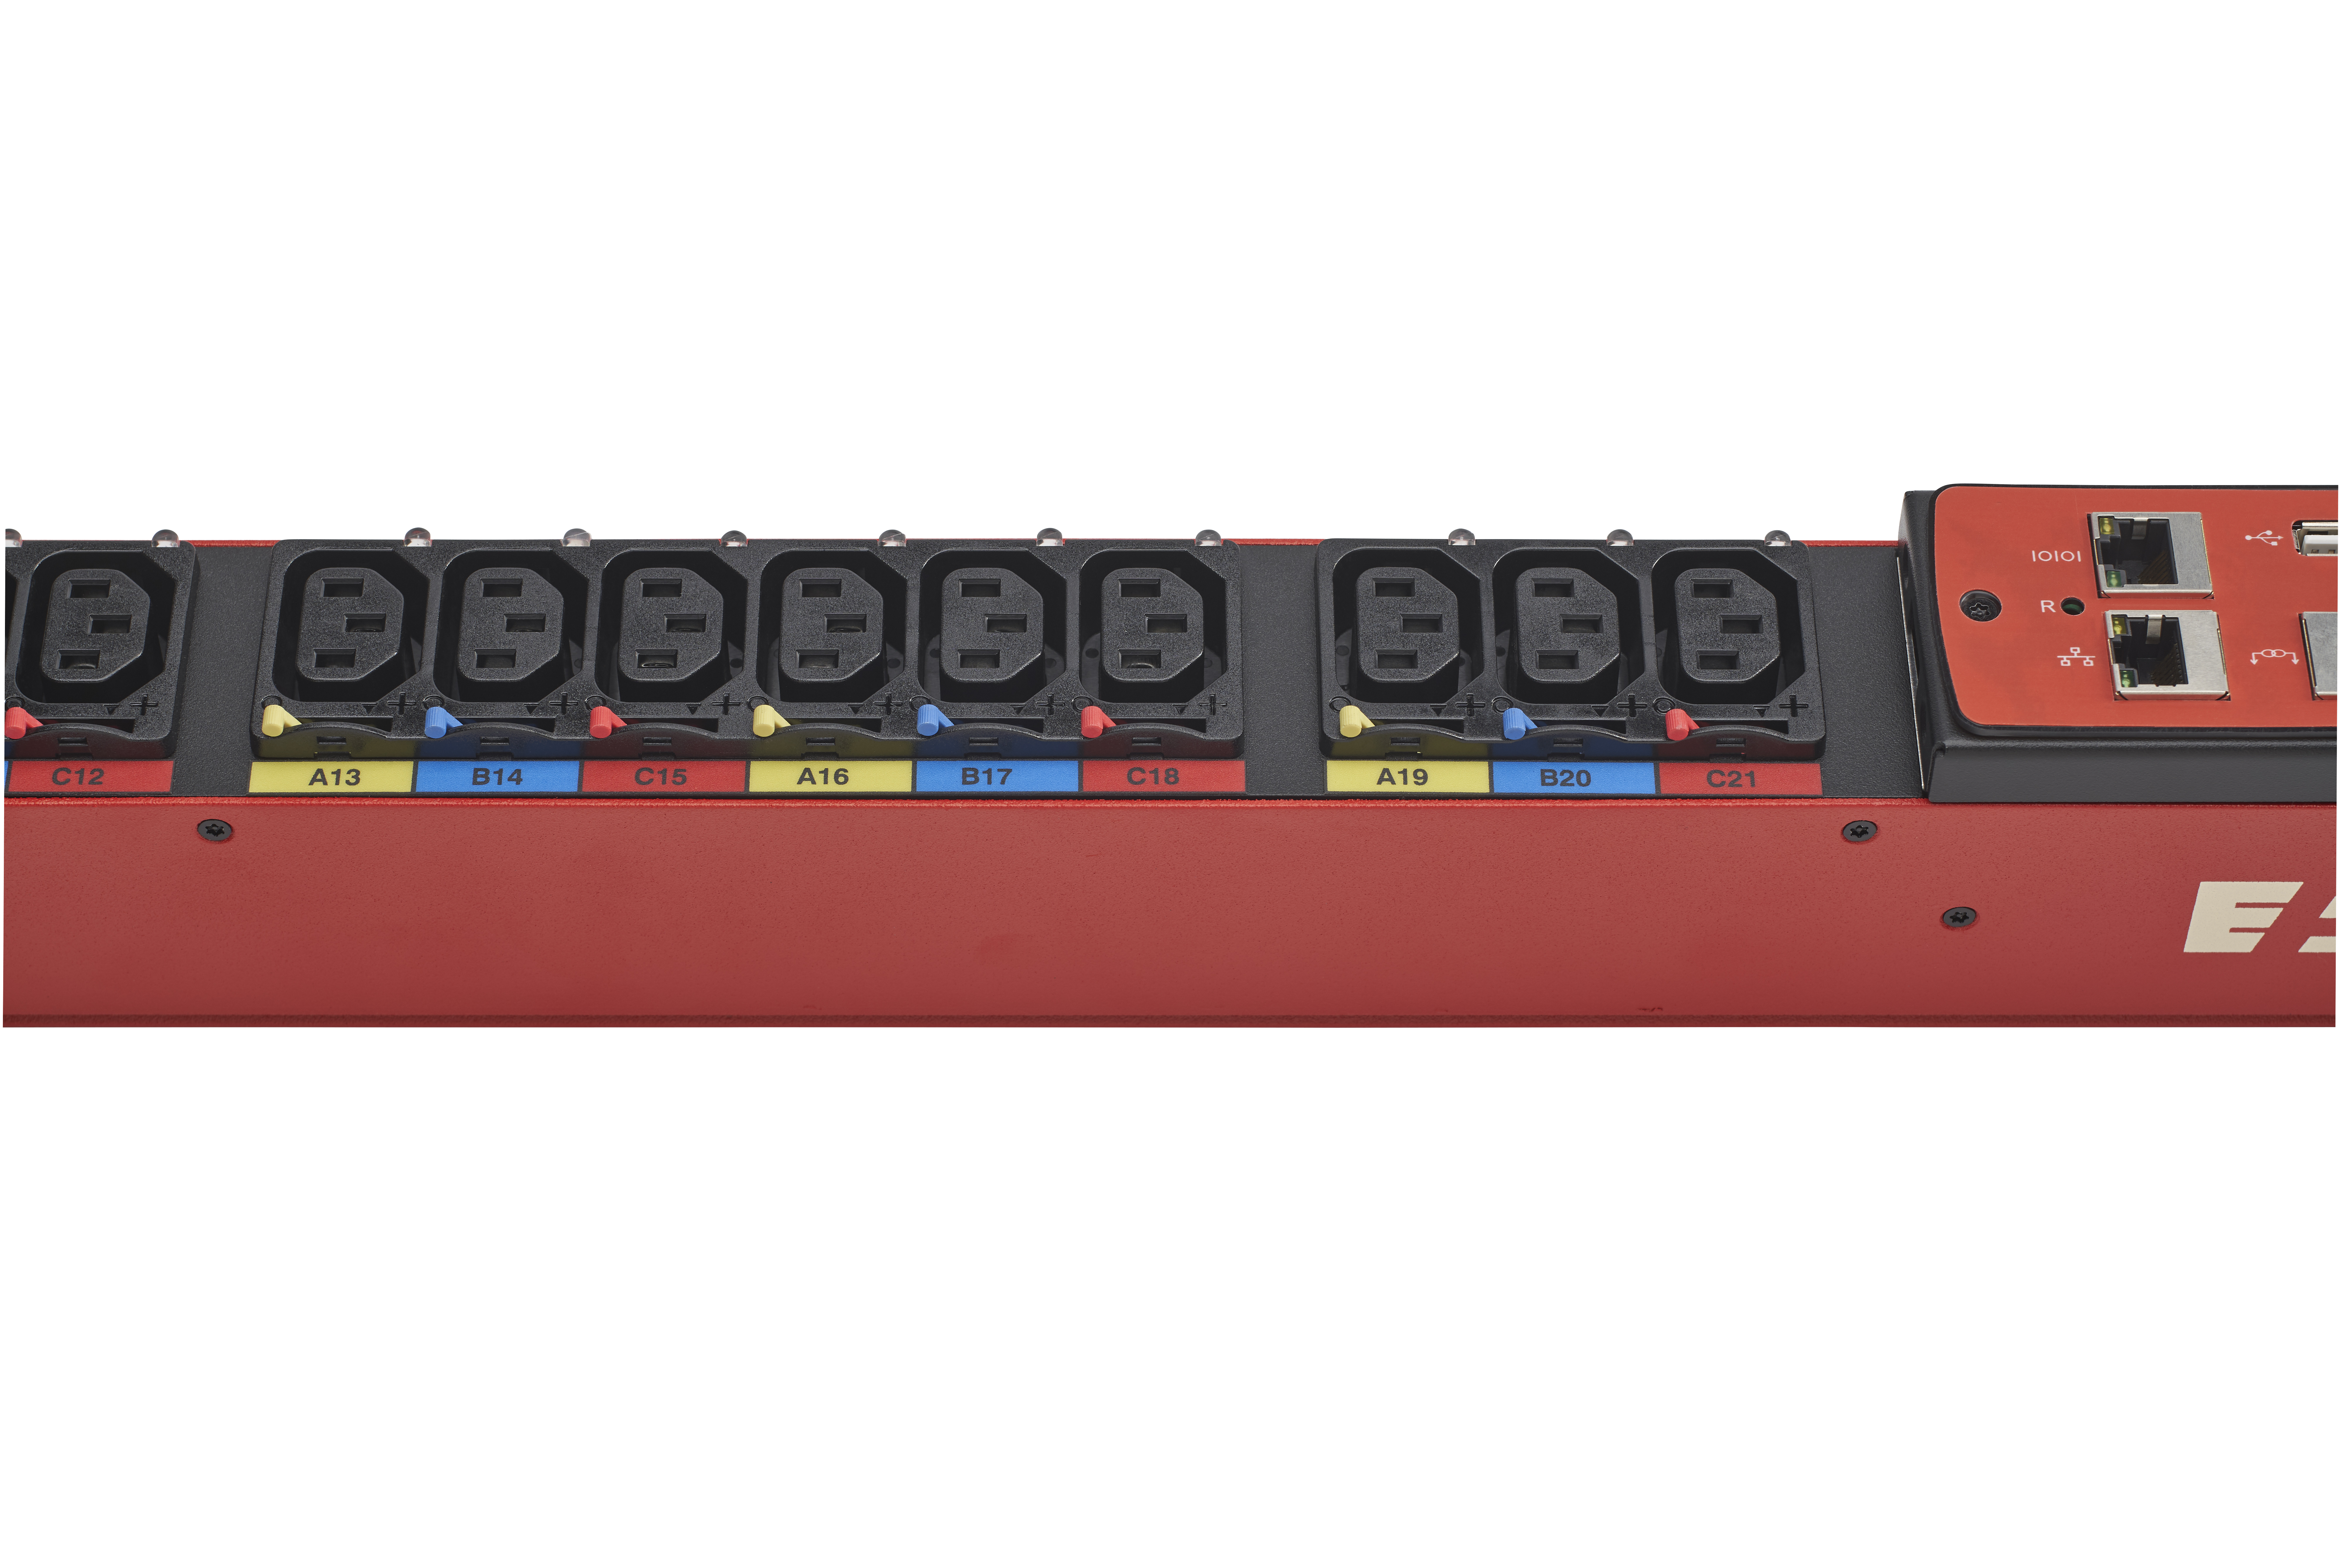 High-Density Rack PDU Offers Advanced Configurability